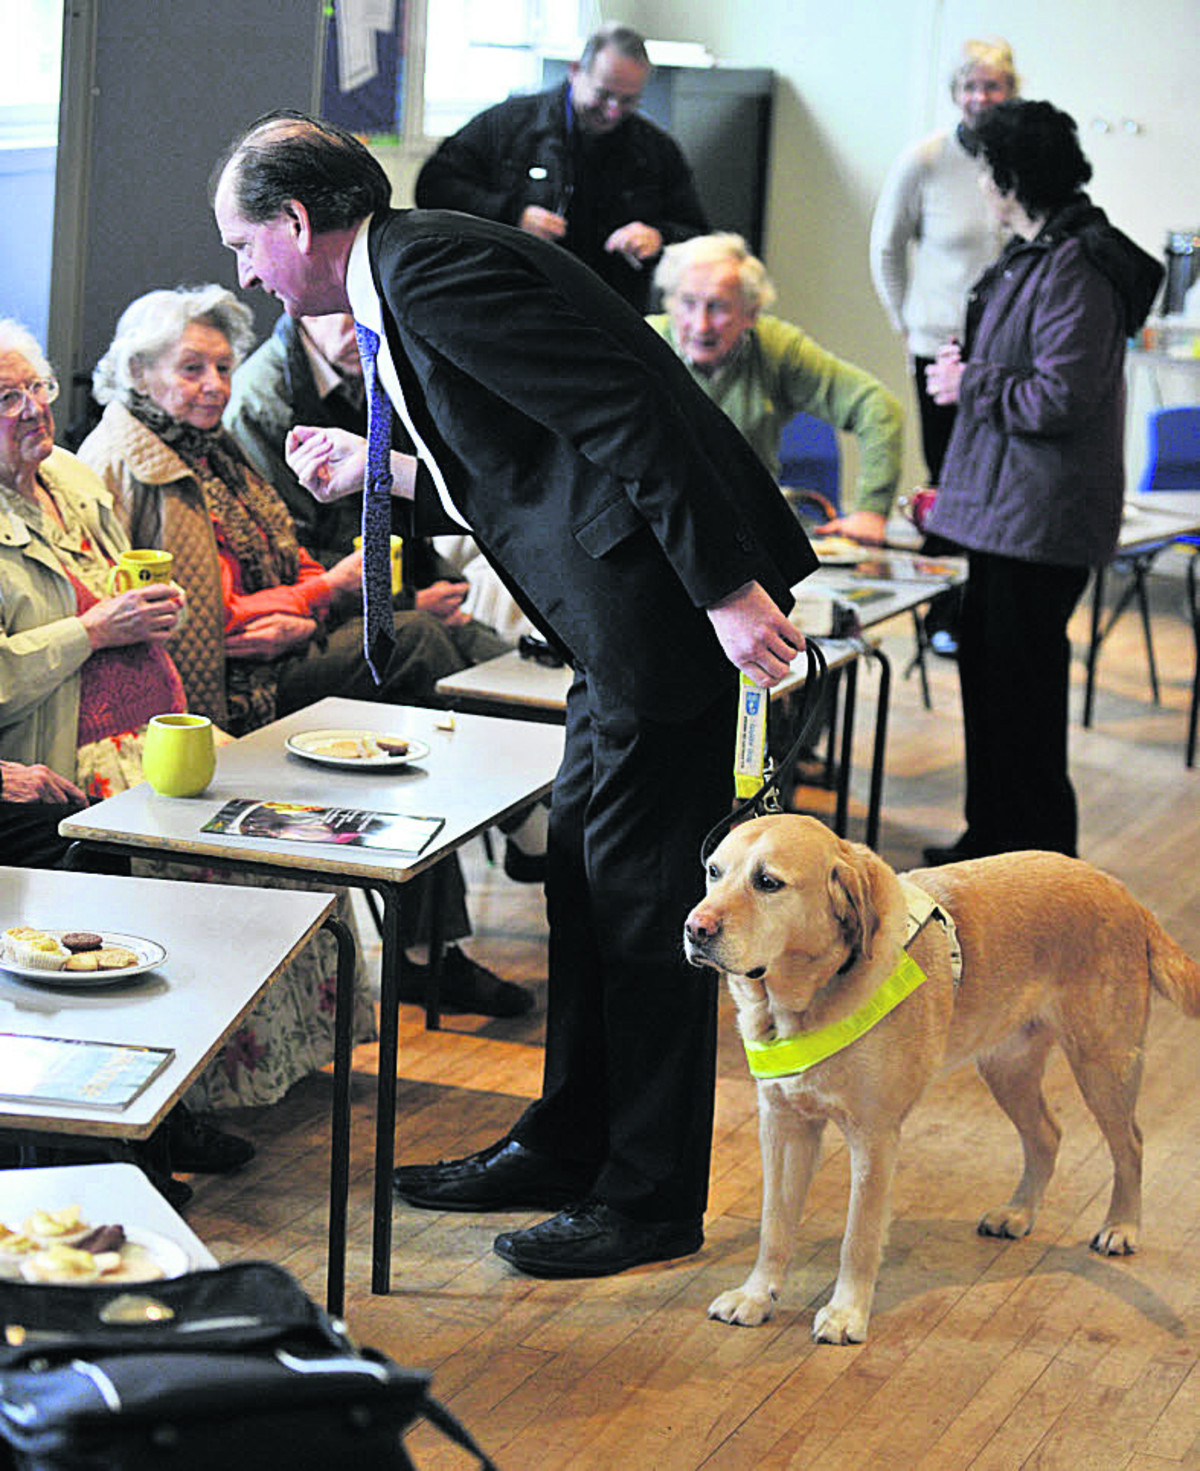 Tom McInulty and his guide dog Brunel at the group. Picture: OX65256 Mark Hemsworth